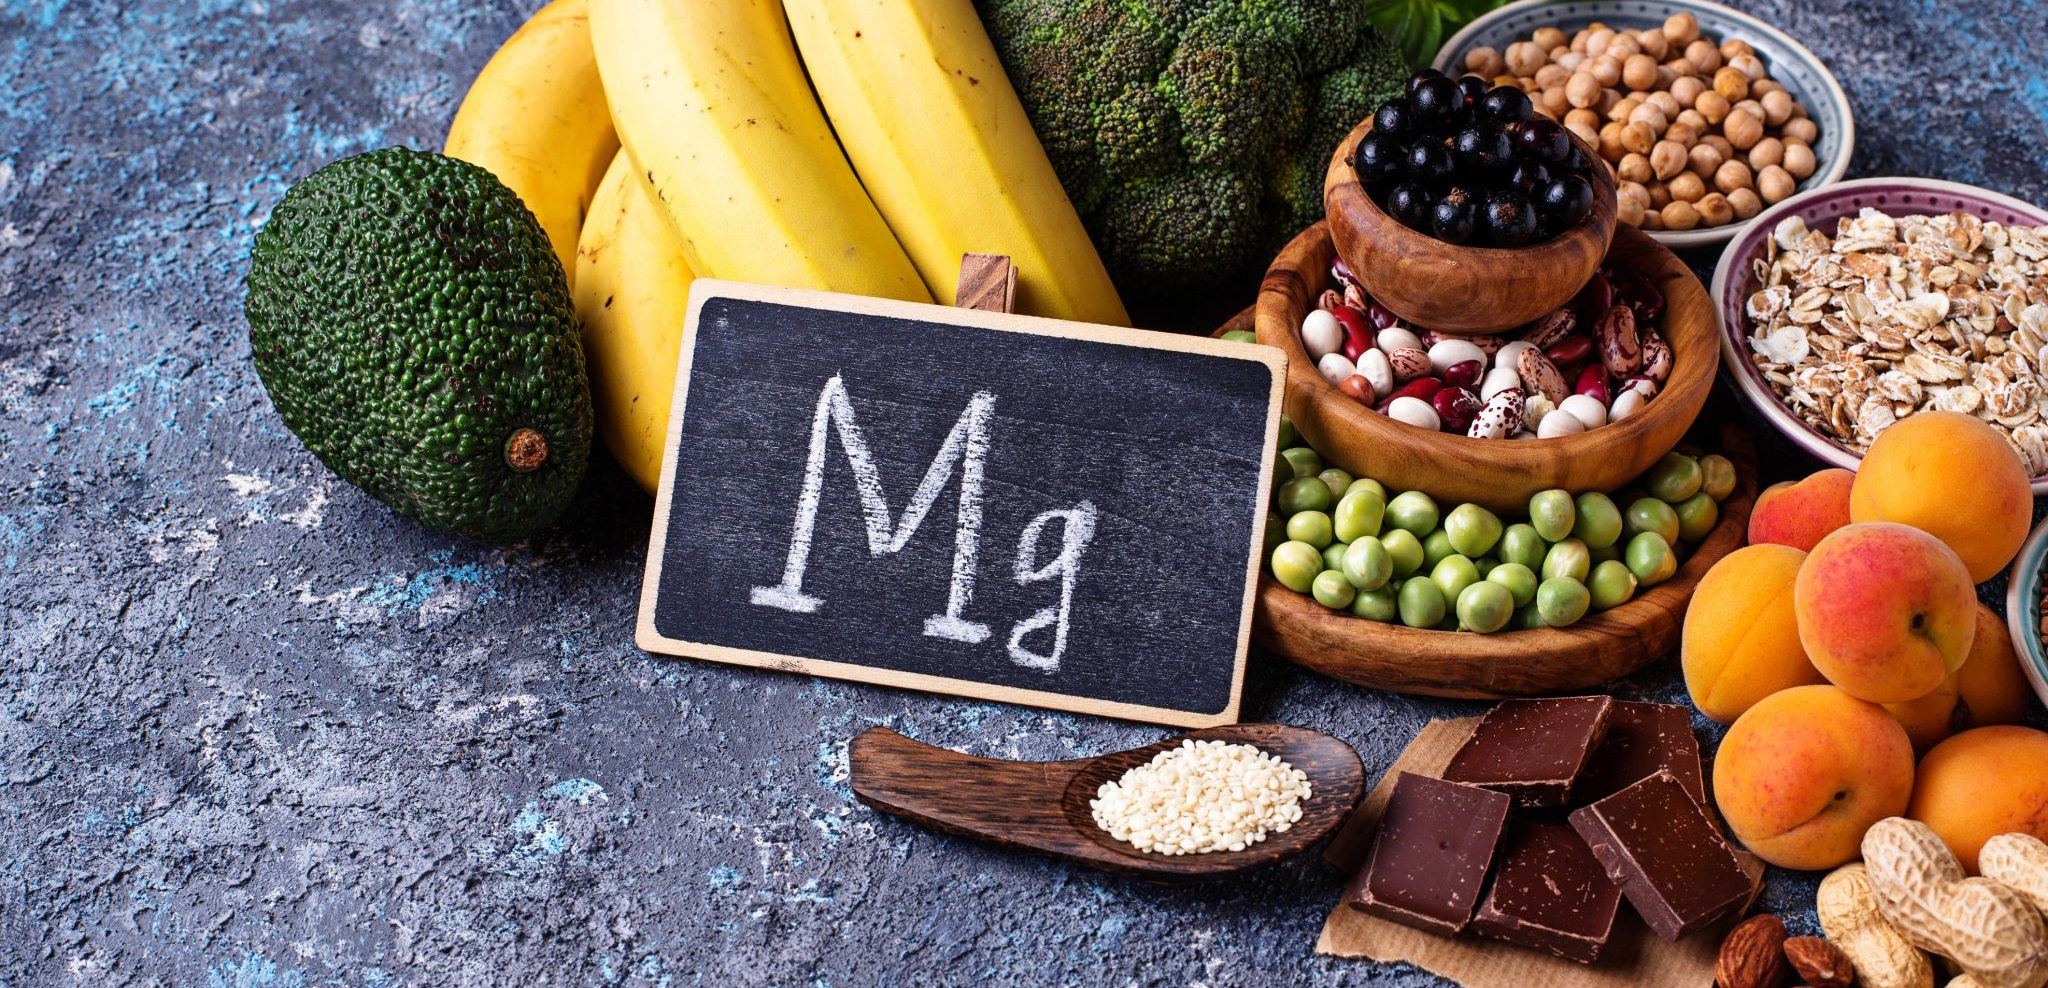 Does Magnesium Help Lower Blood Pressure?